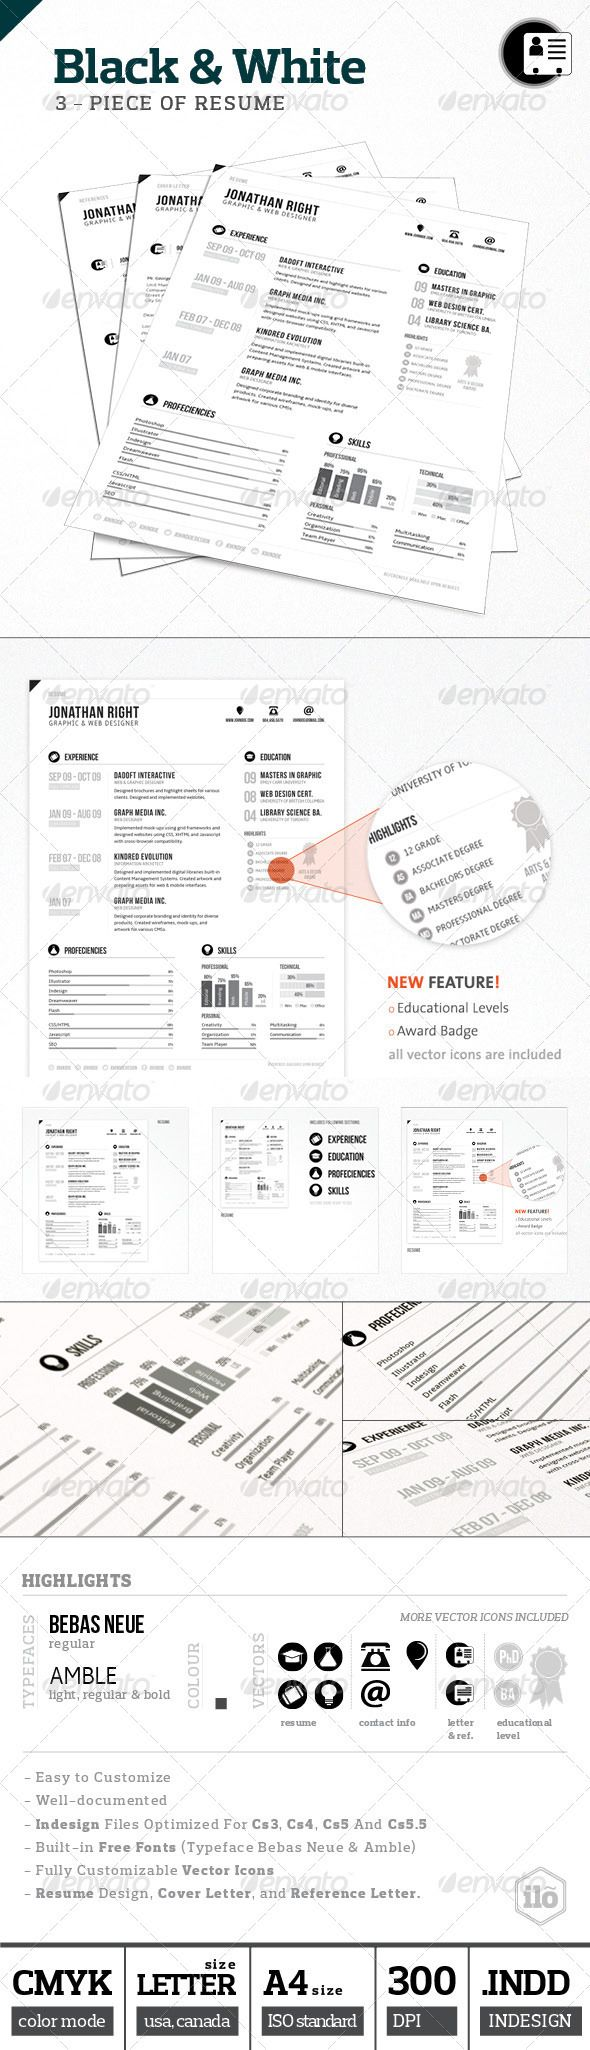 7 Best Resume Template BULONO Images On Pinterest